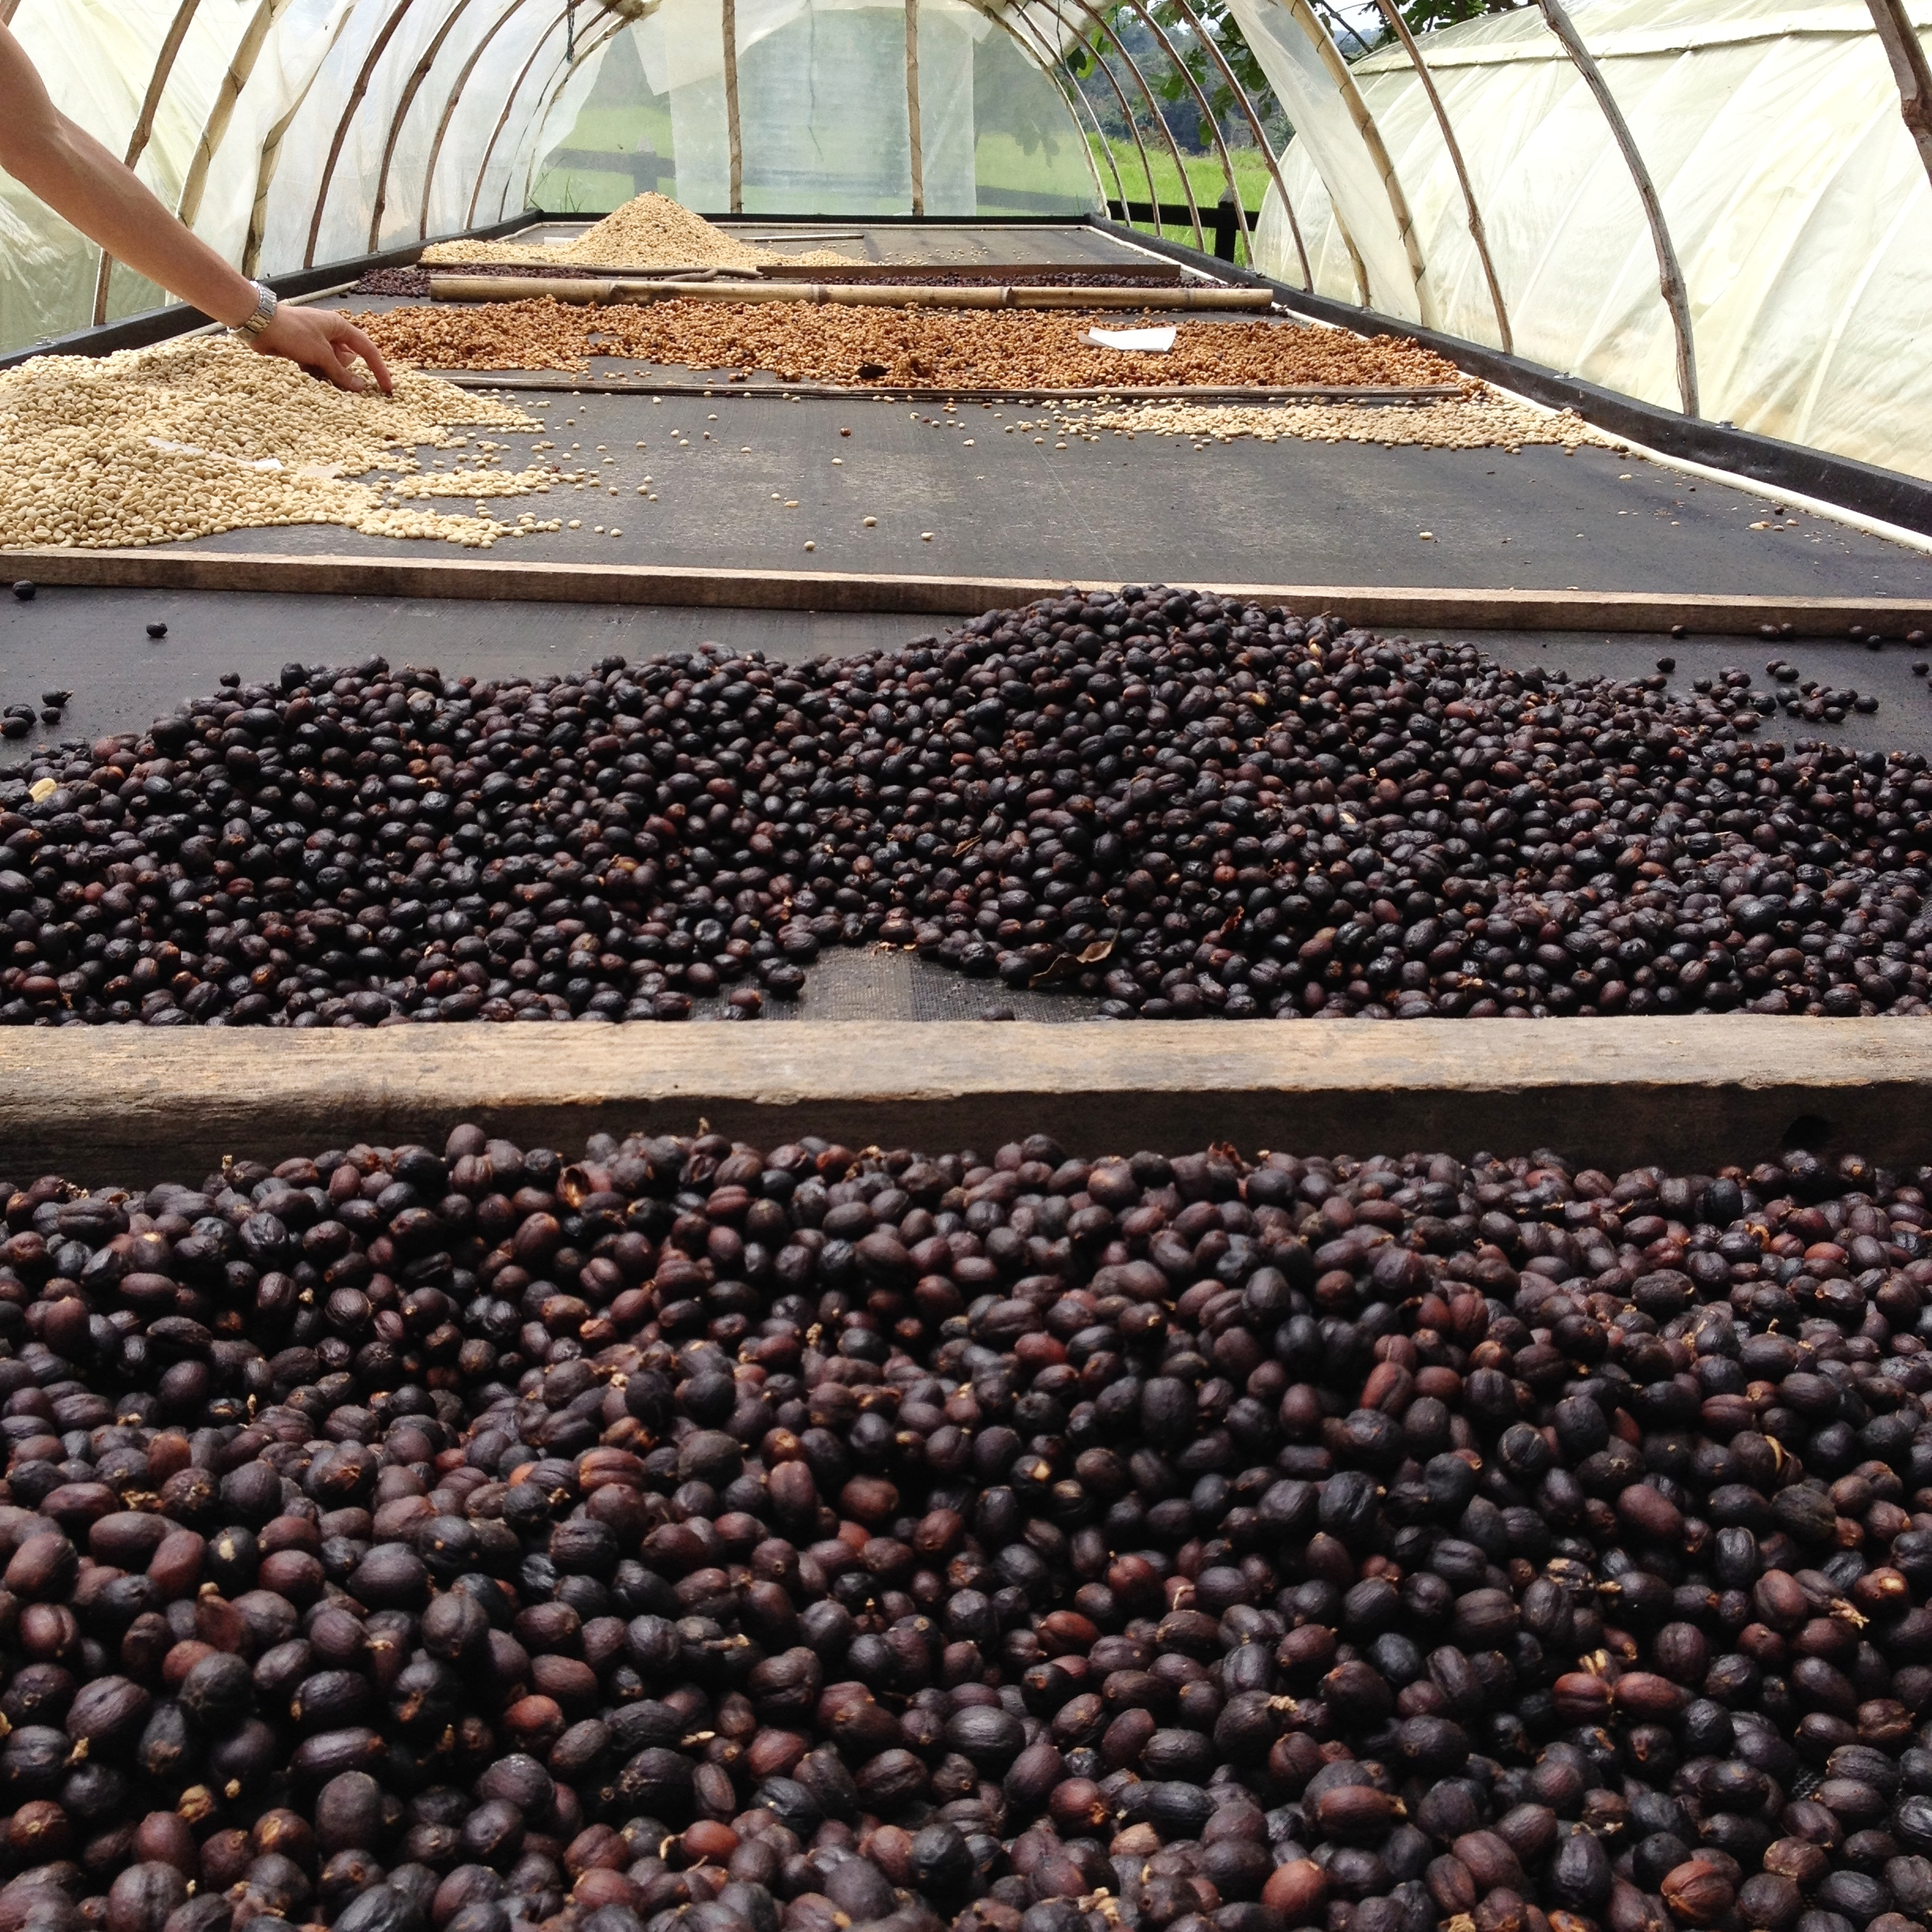 Natural coffee drying